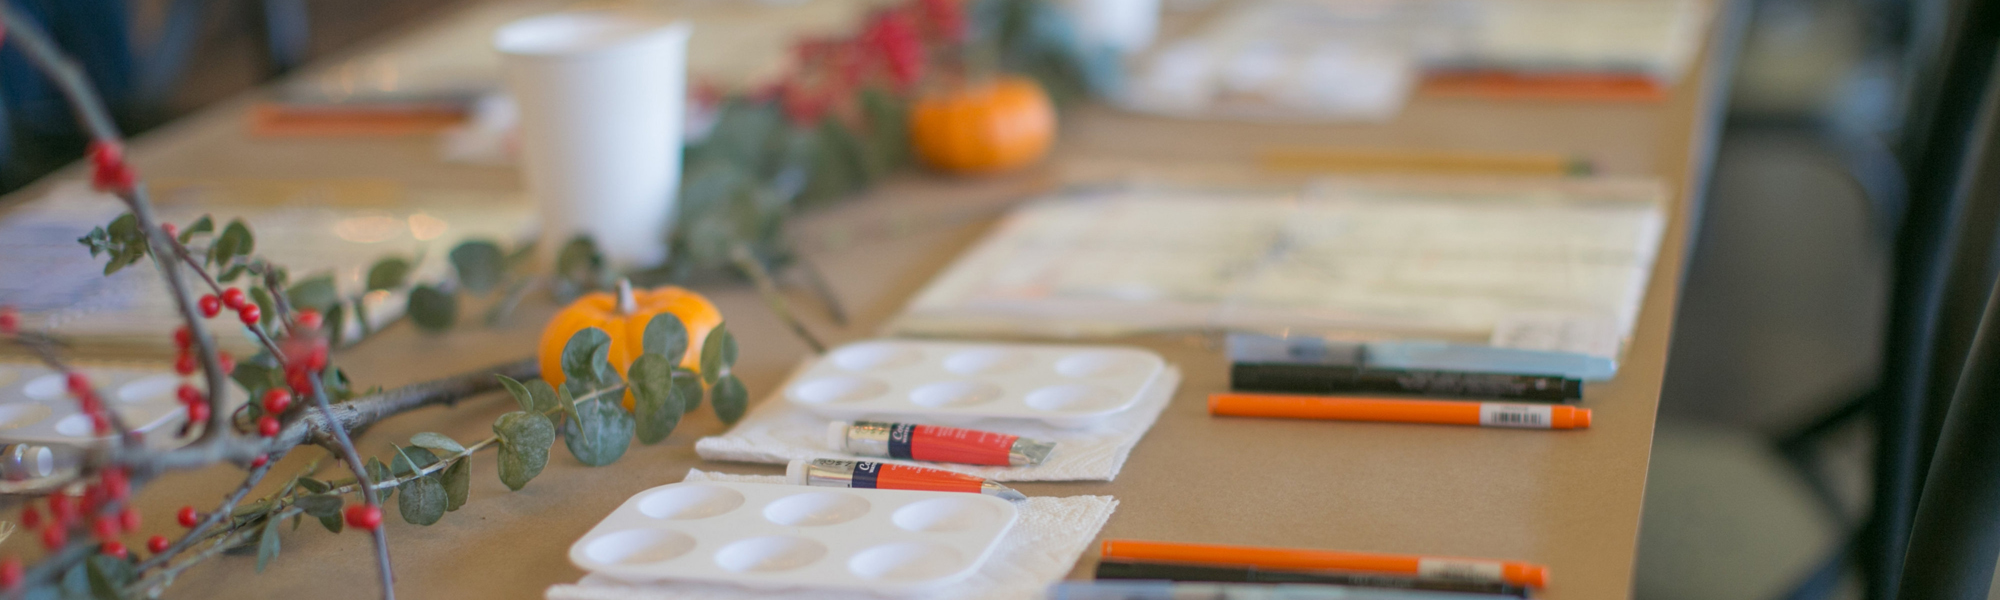 in-person hand-lettering workshop - brush lettering and water brush lettering supplies